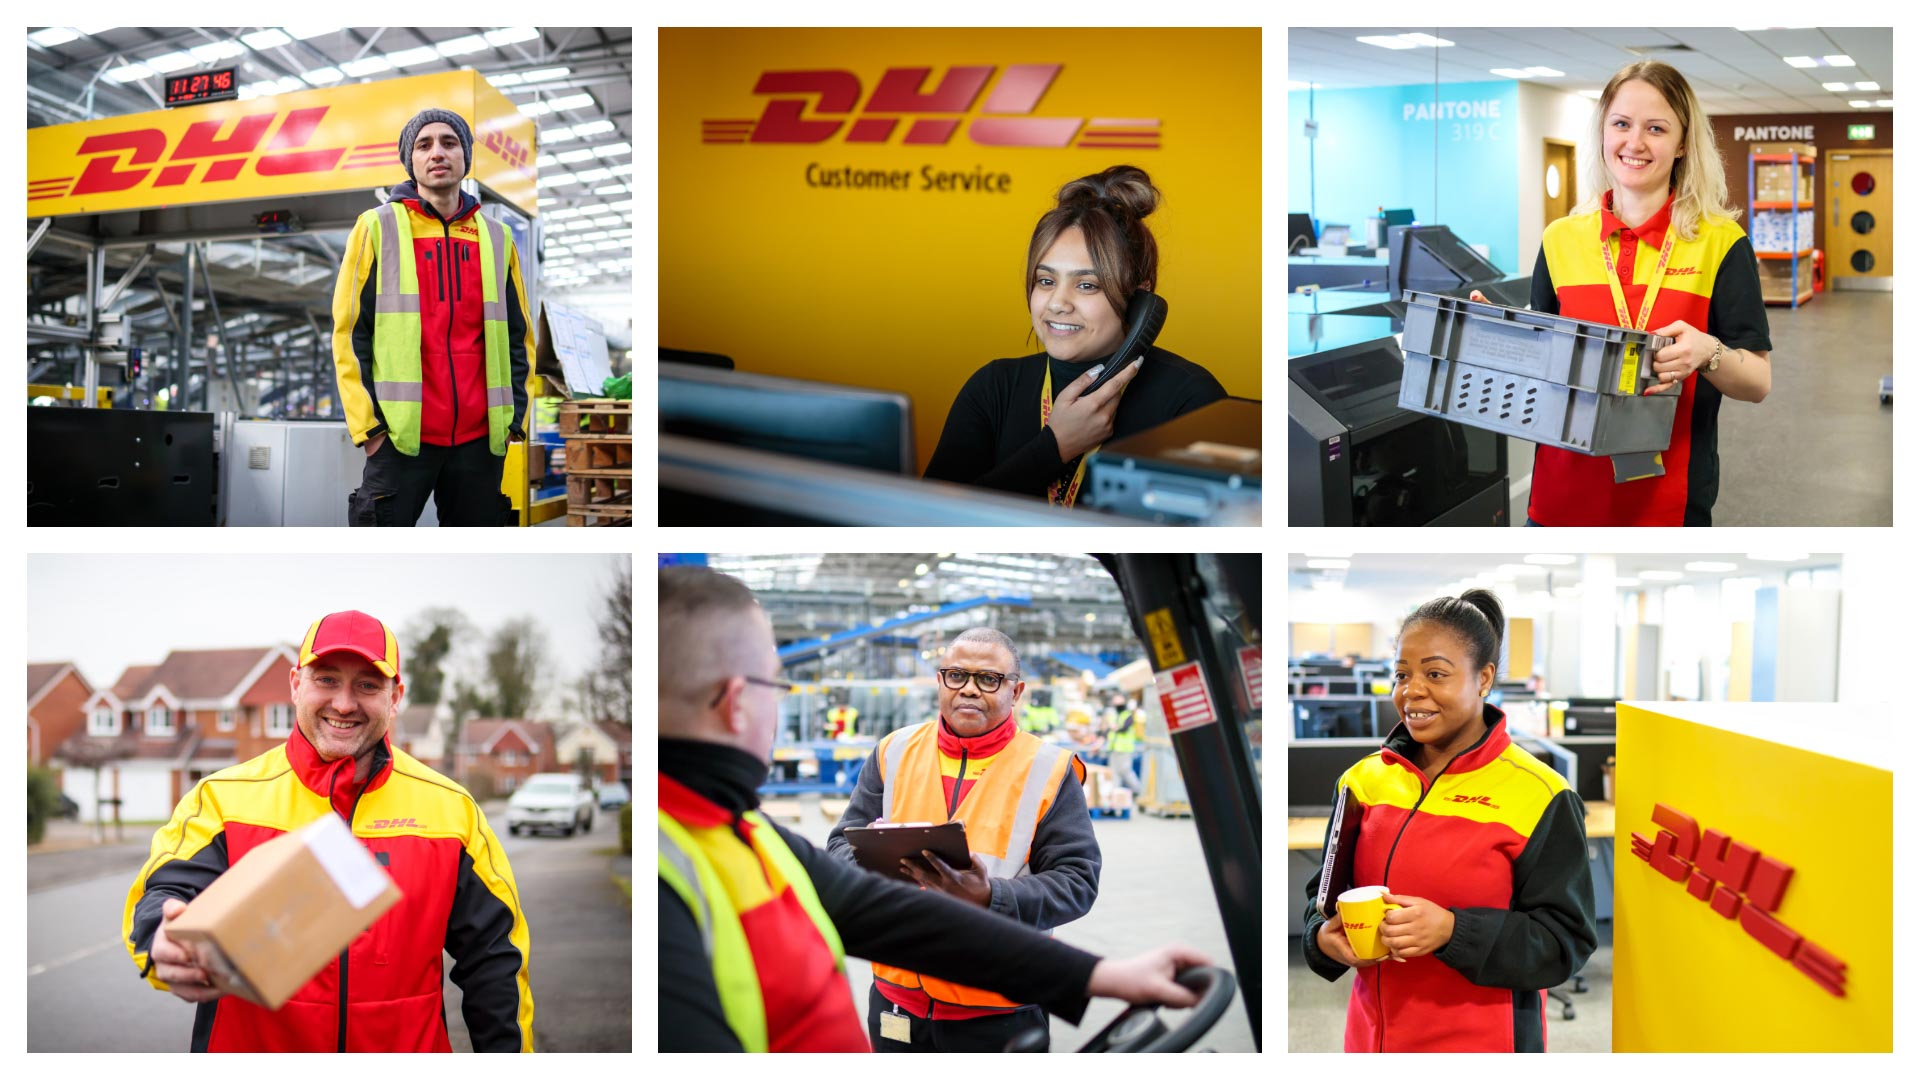 dhl-commercial-photography-uk